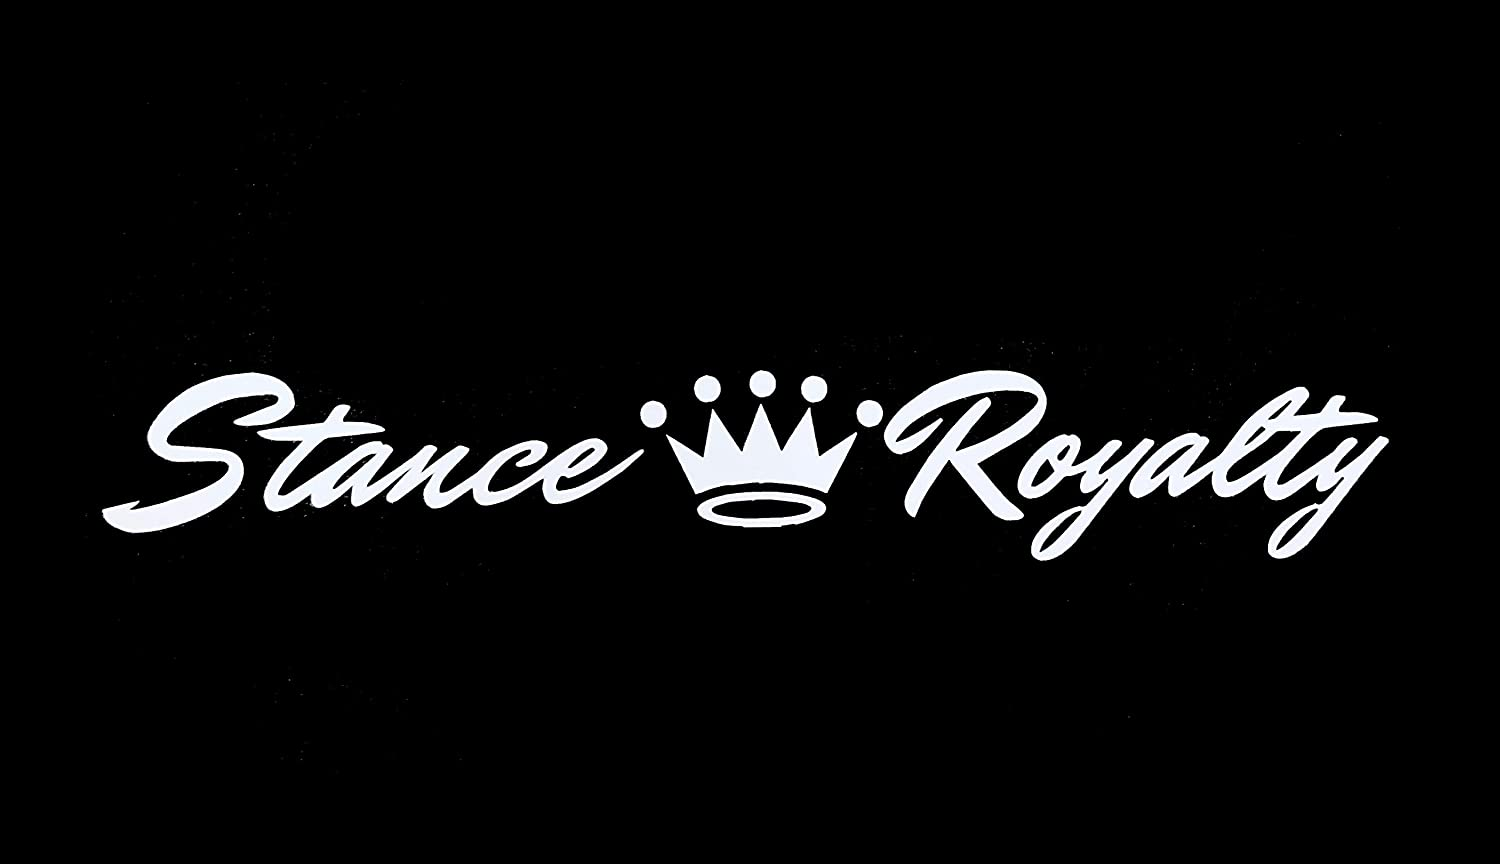 Stance Royalty Crown Decal Vinyl Sticker|Cars Trucks Vans Walls Laptop| White |7.5 x 1.5 in|DUC256